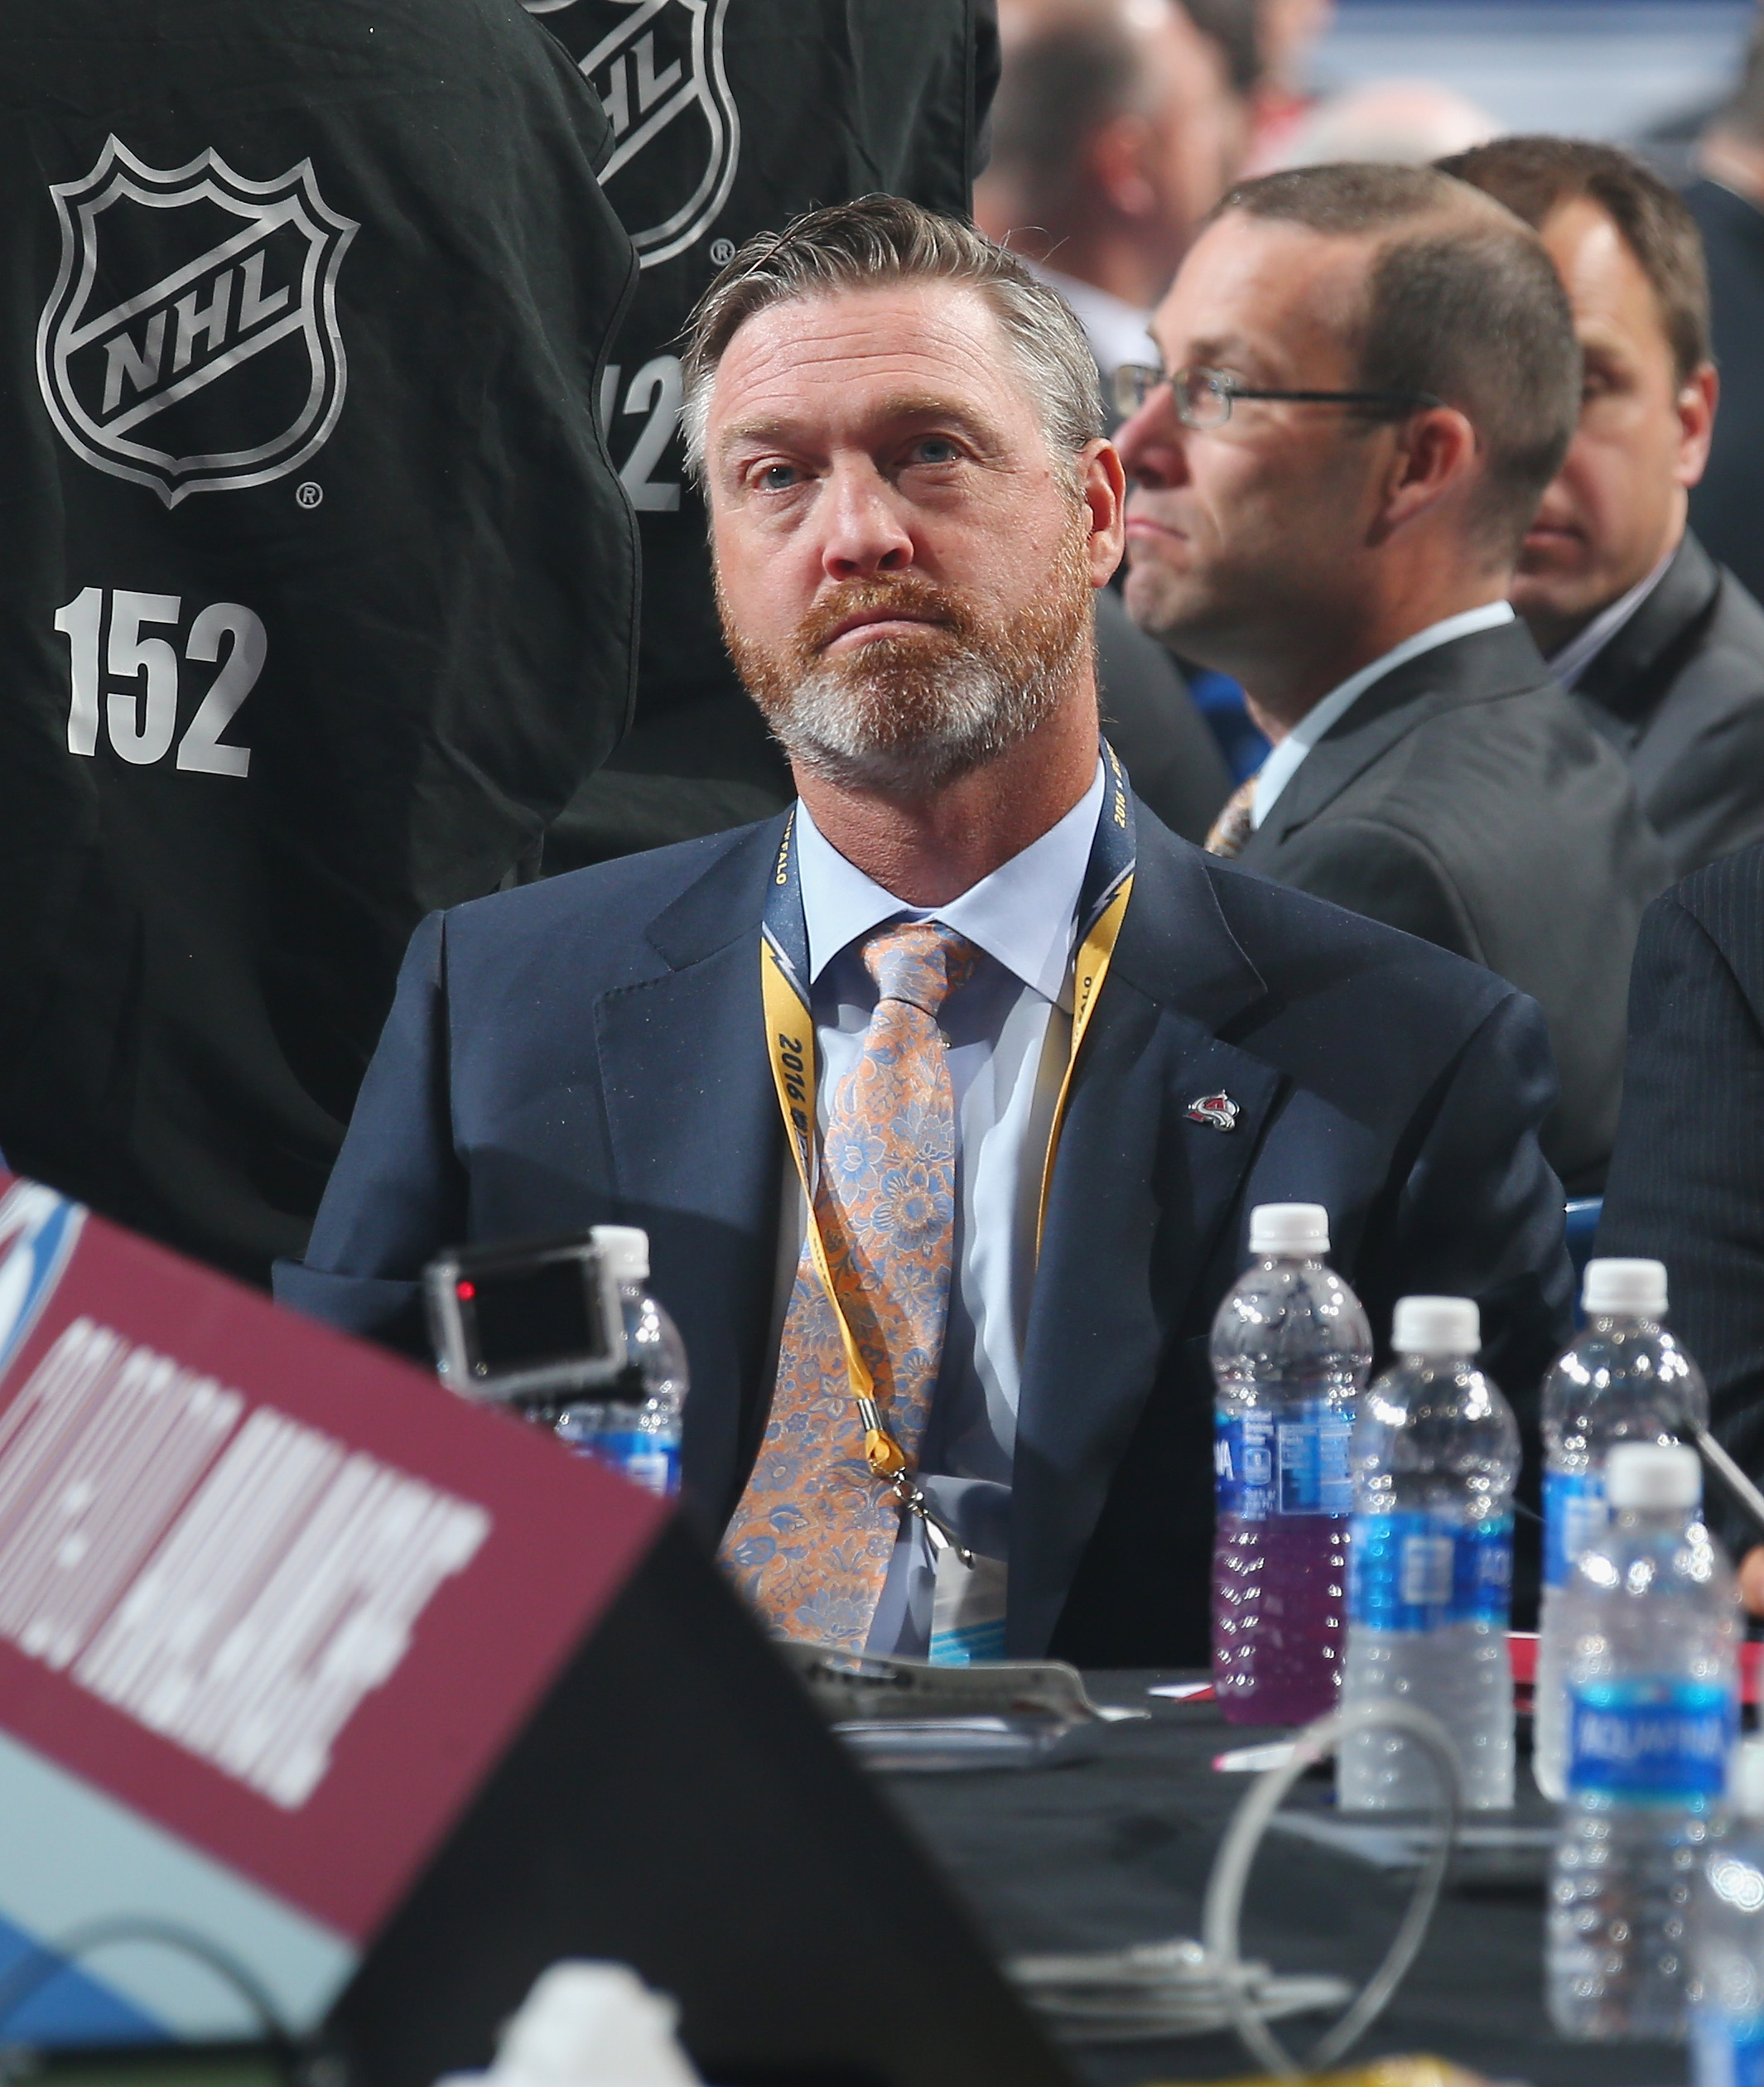 Patrick Roy of the Colorado Avalanche attends the 2016 NHL Draft on June 25, 2016 in Buffalo, New York.  (credit: Bruce Bennett/Getty Images)